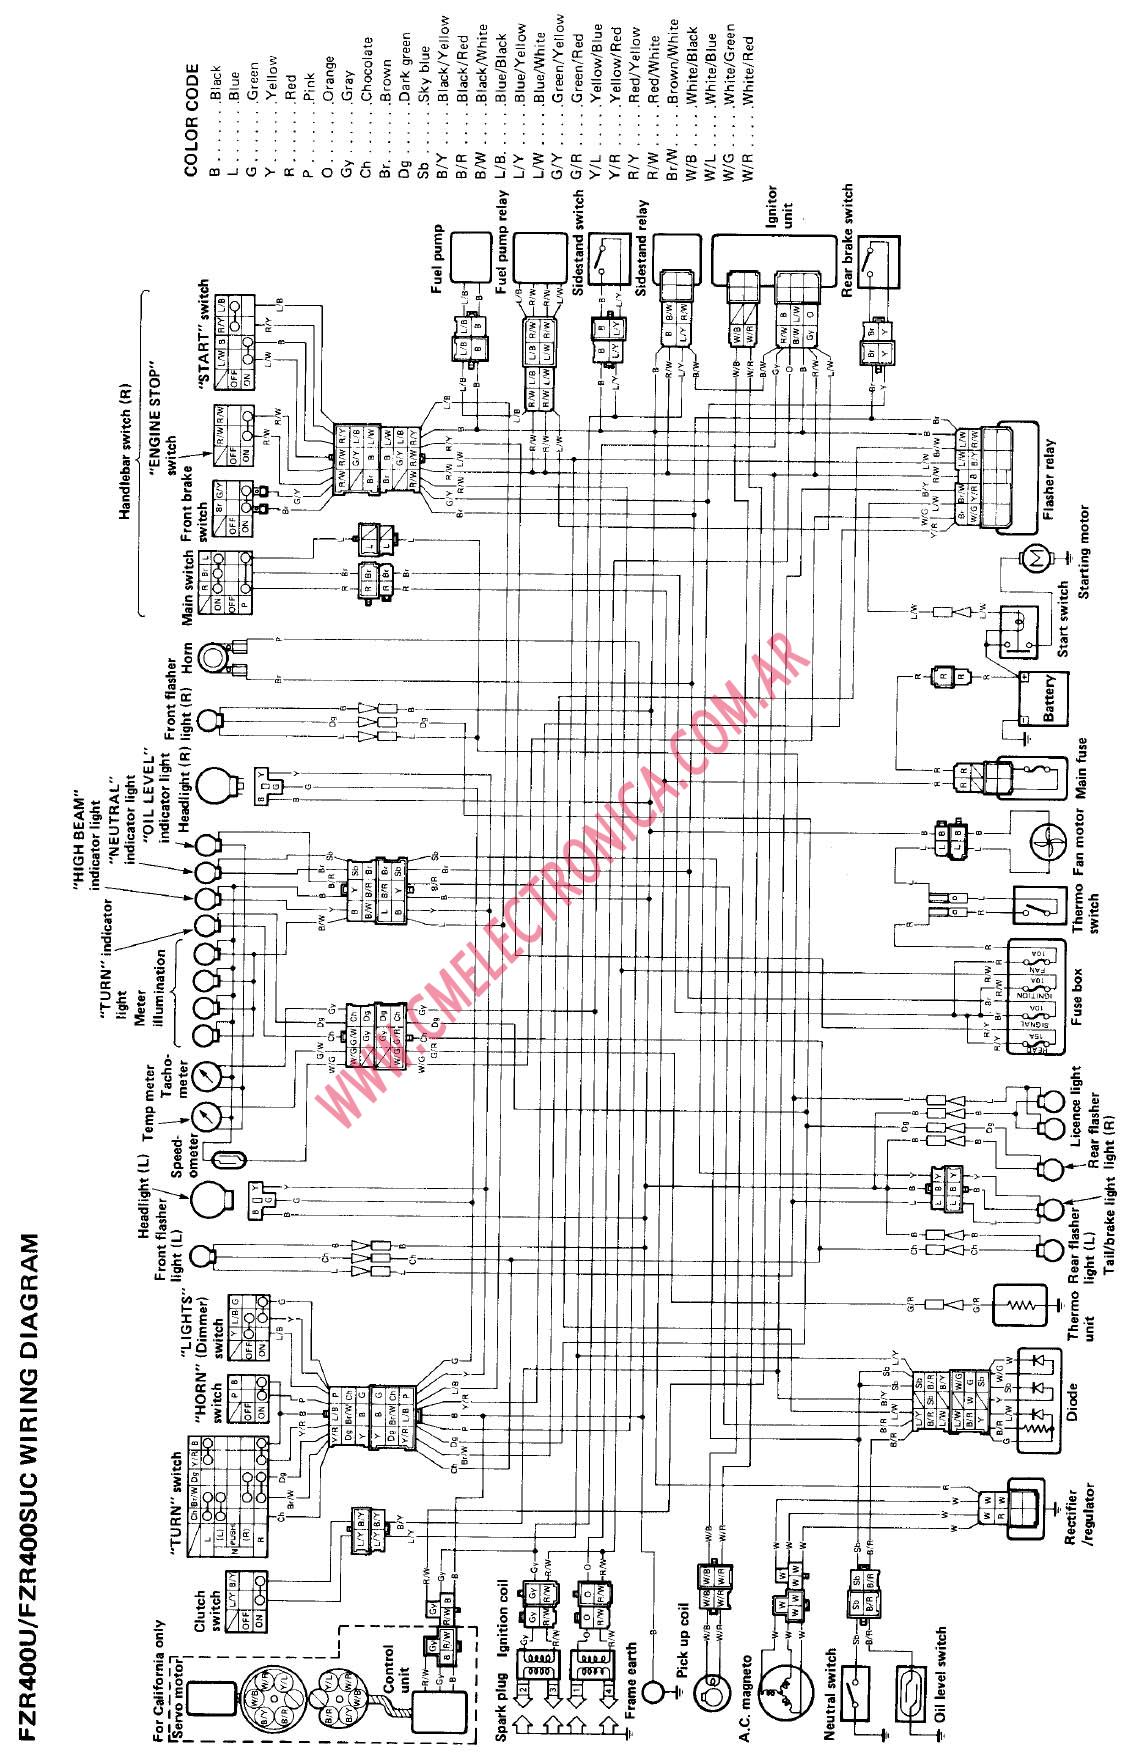 2003 Yamaha Kodiak 400 Wiring Diagram Schematic 2019 1996 Carburetor Car Interior Design